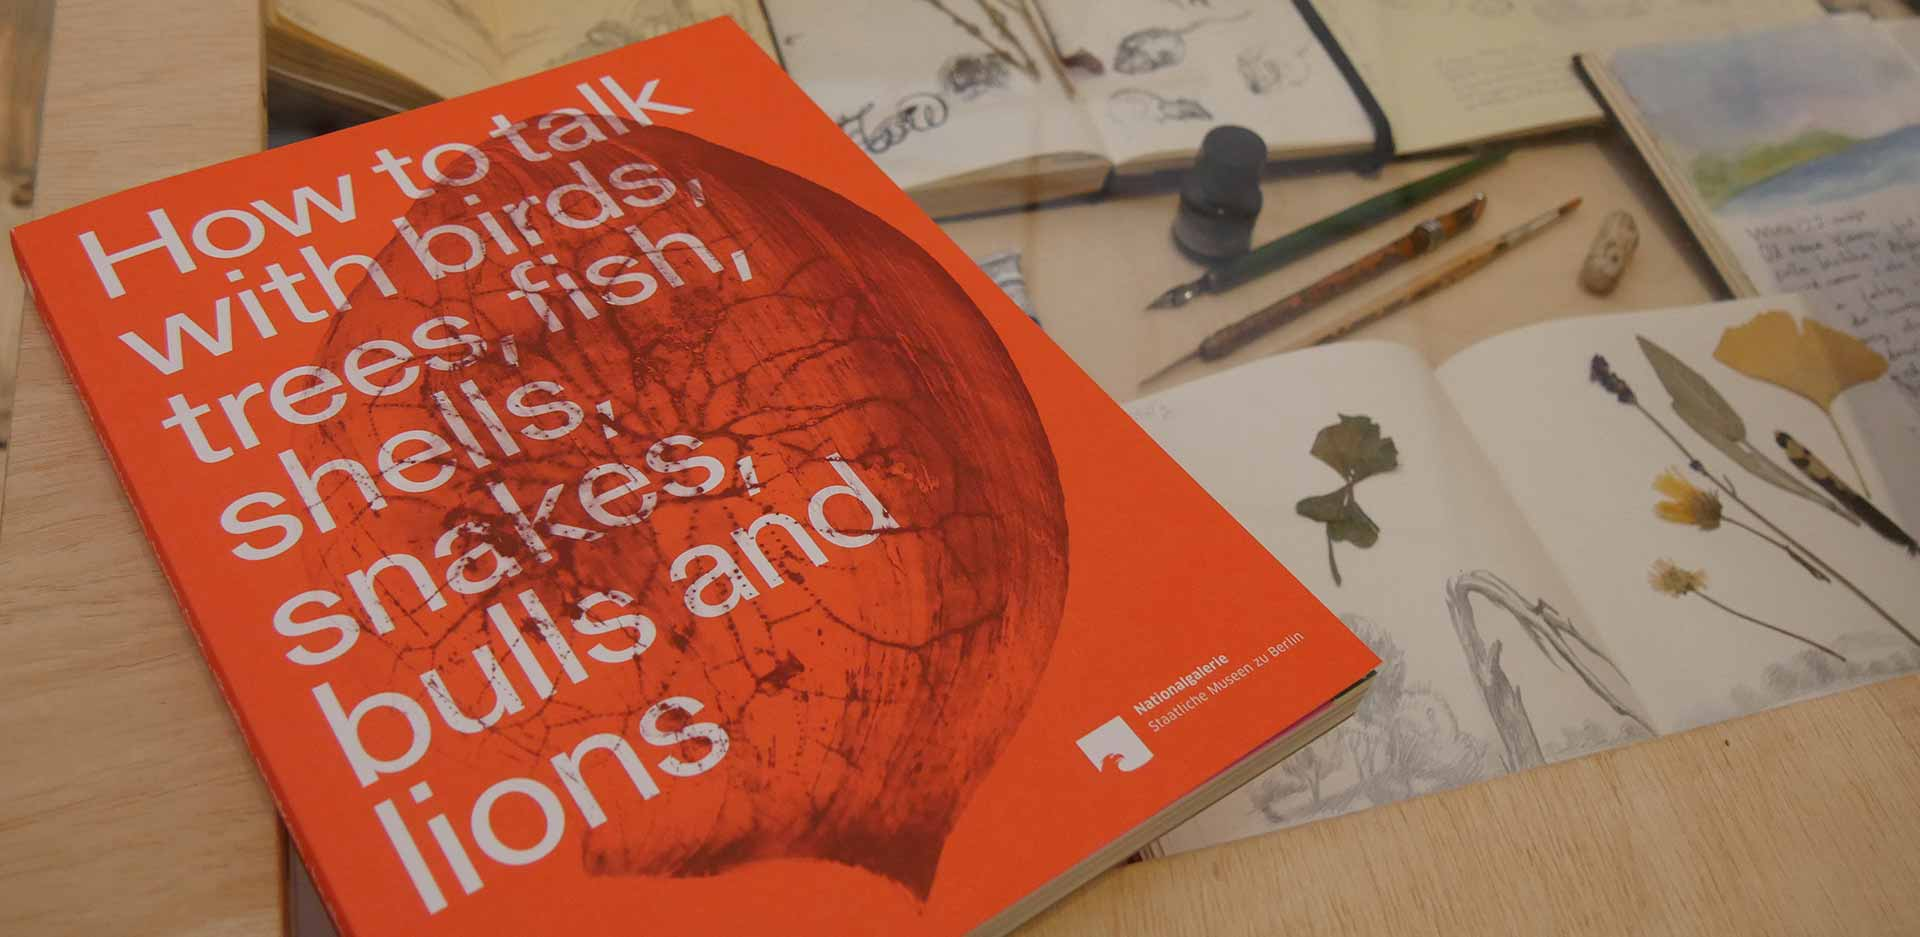 Exhibition catalogue: How to talk with birds, trees, fish, shells, snakes, bulls and lions